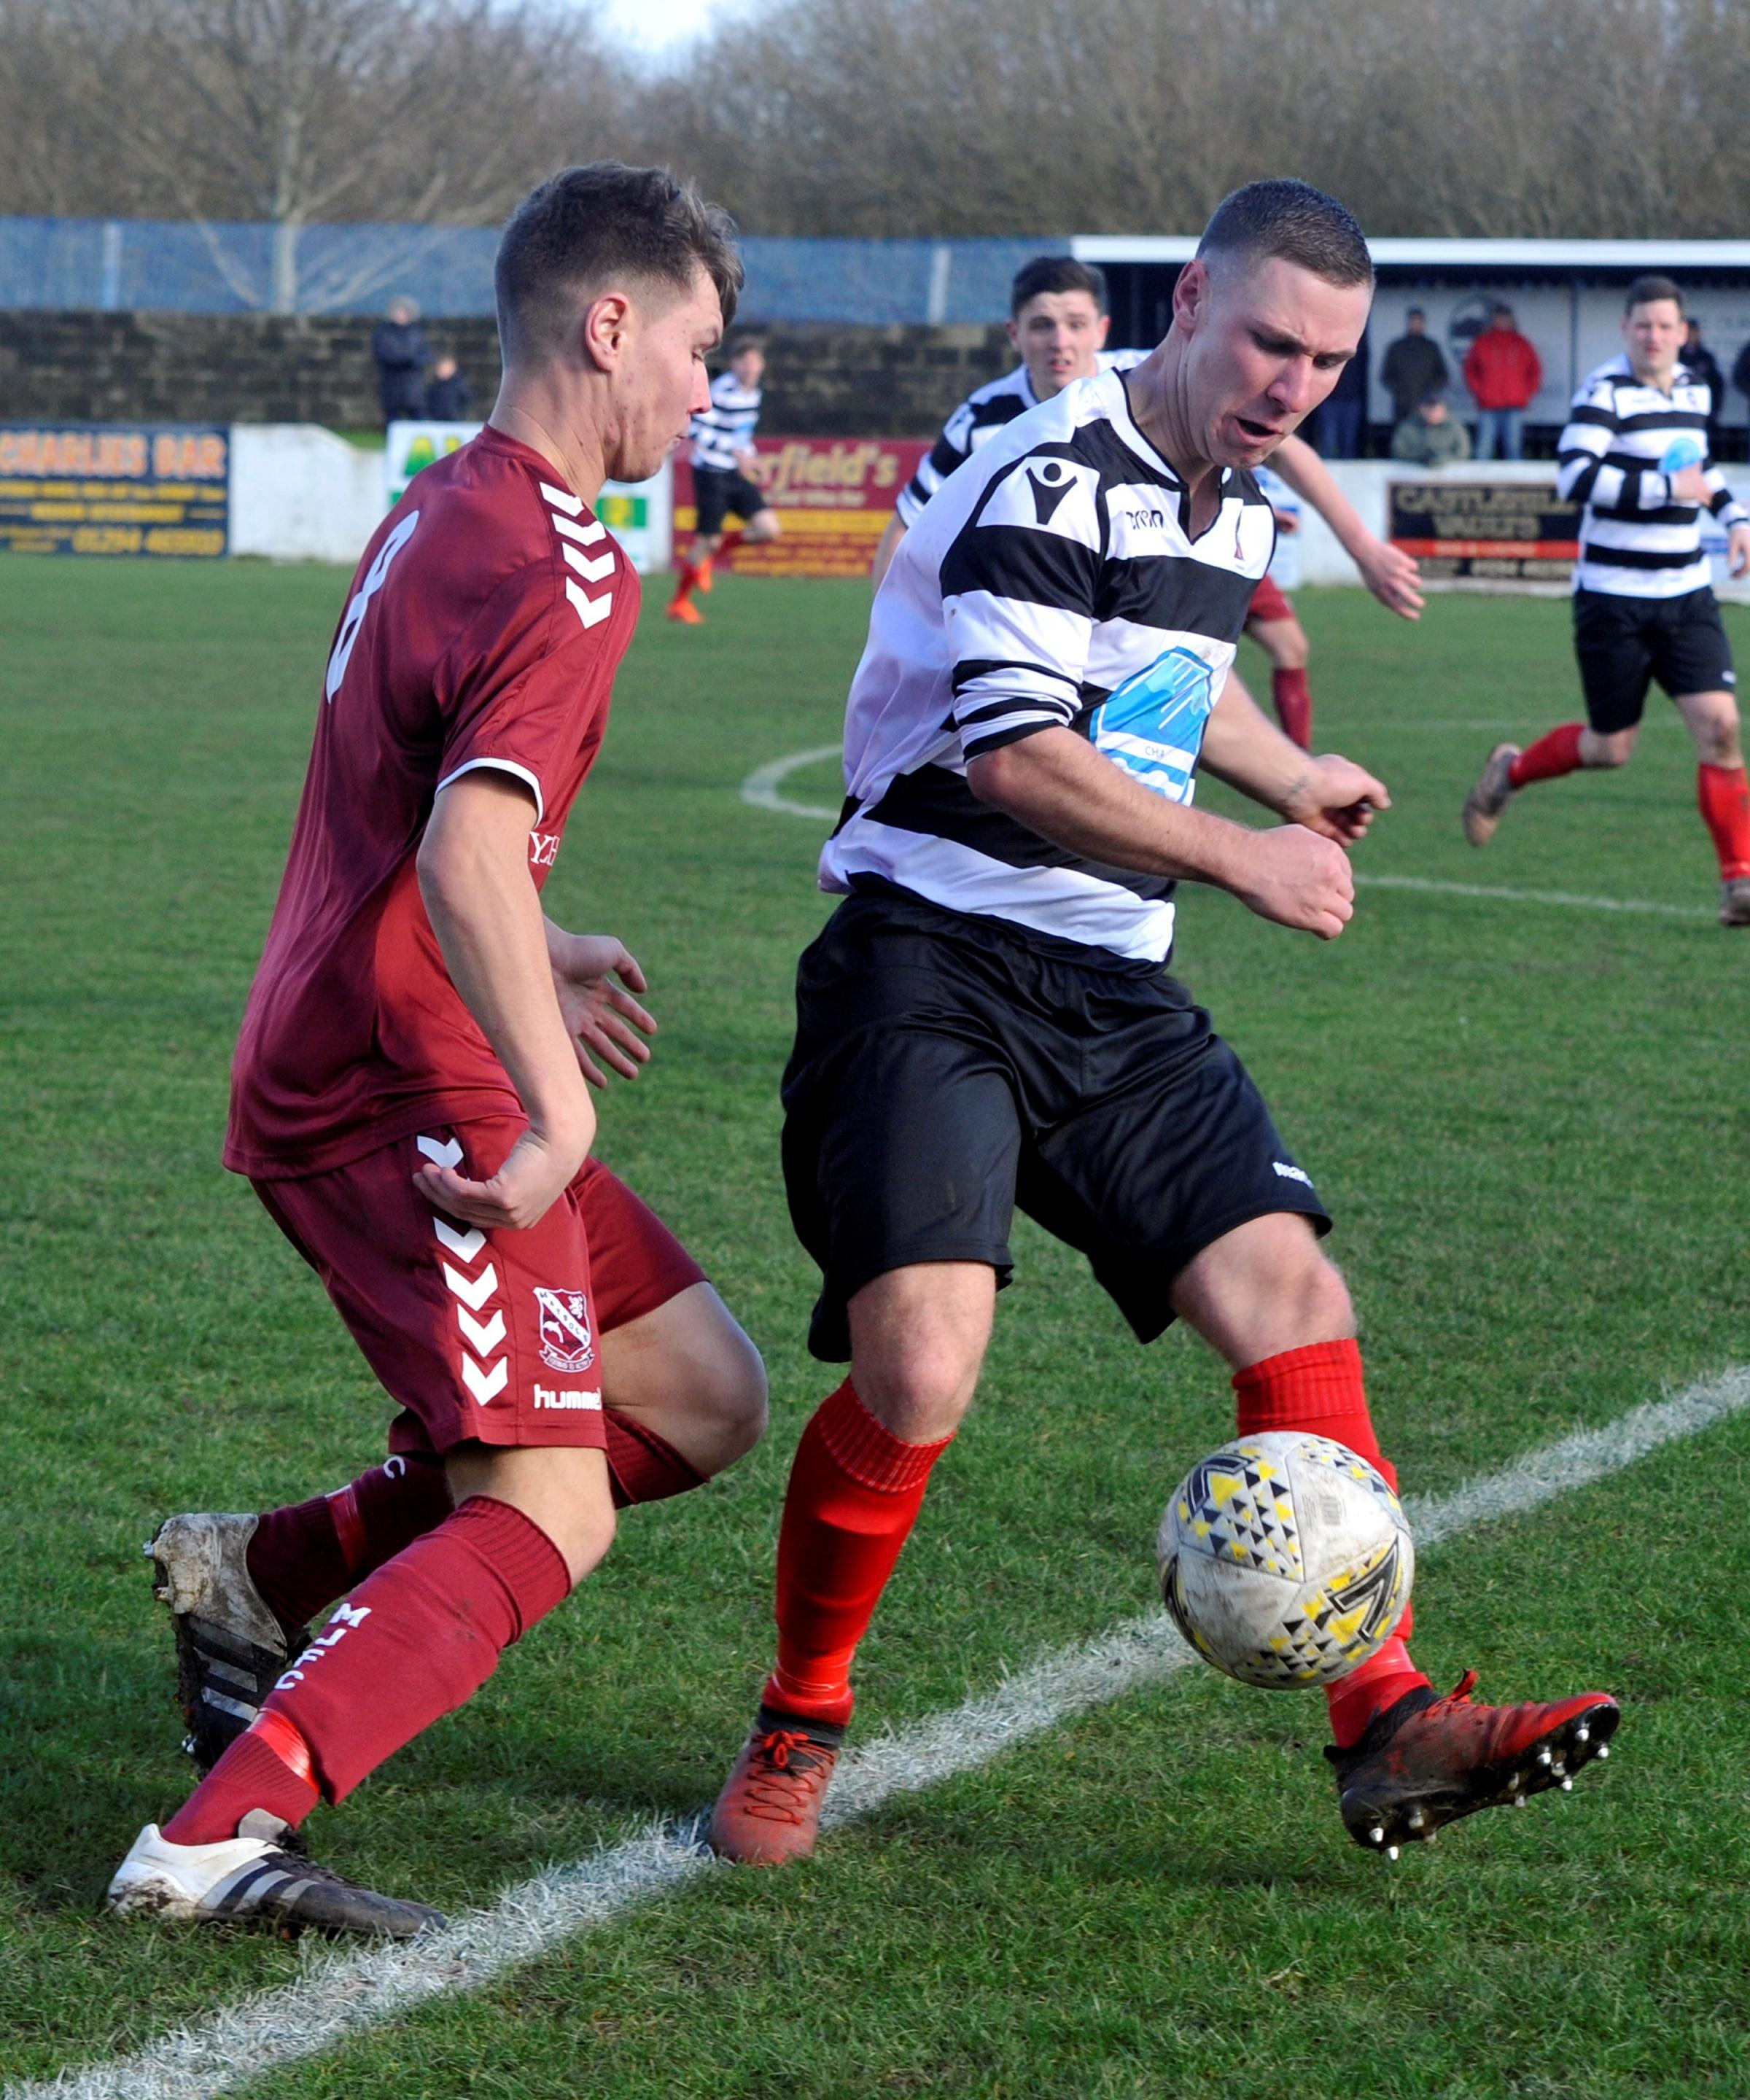 Michael Wardrope (pictured right) in action for Winton against Maybole on Saturday.